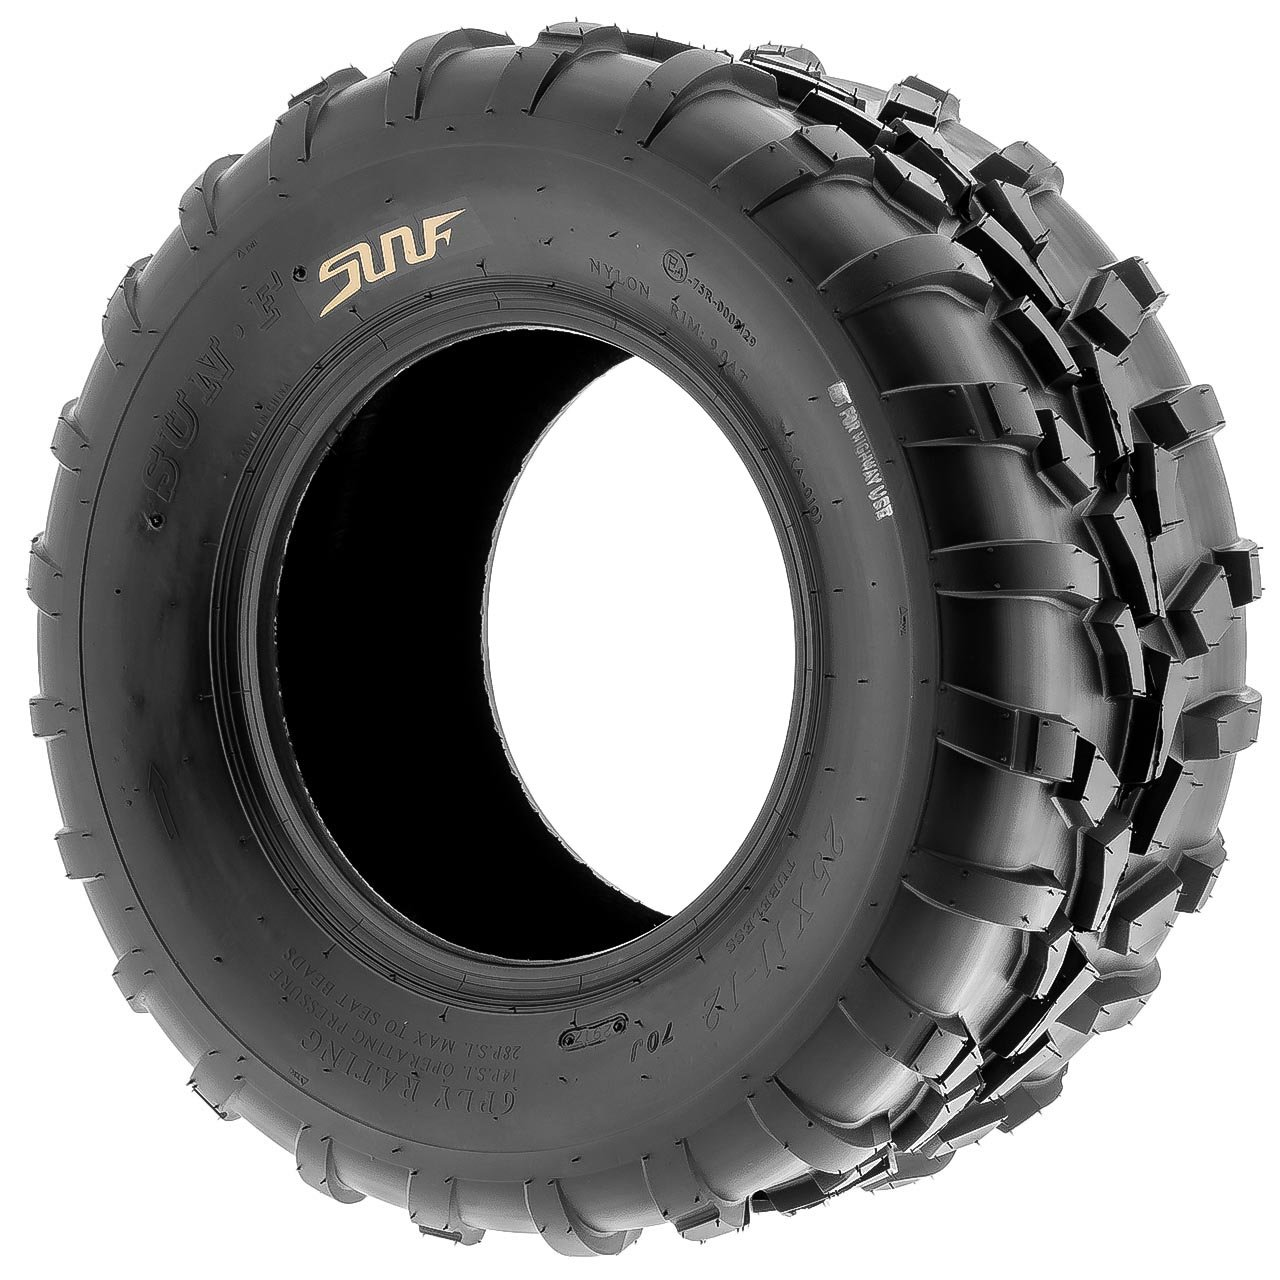 Pair of 2 SunF 25x11-12 AT-XC ATV/UTV Off-Road Tires , 6PR , Directional Knobby Tread | A010 by SunF (Image #4)